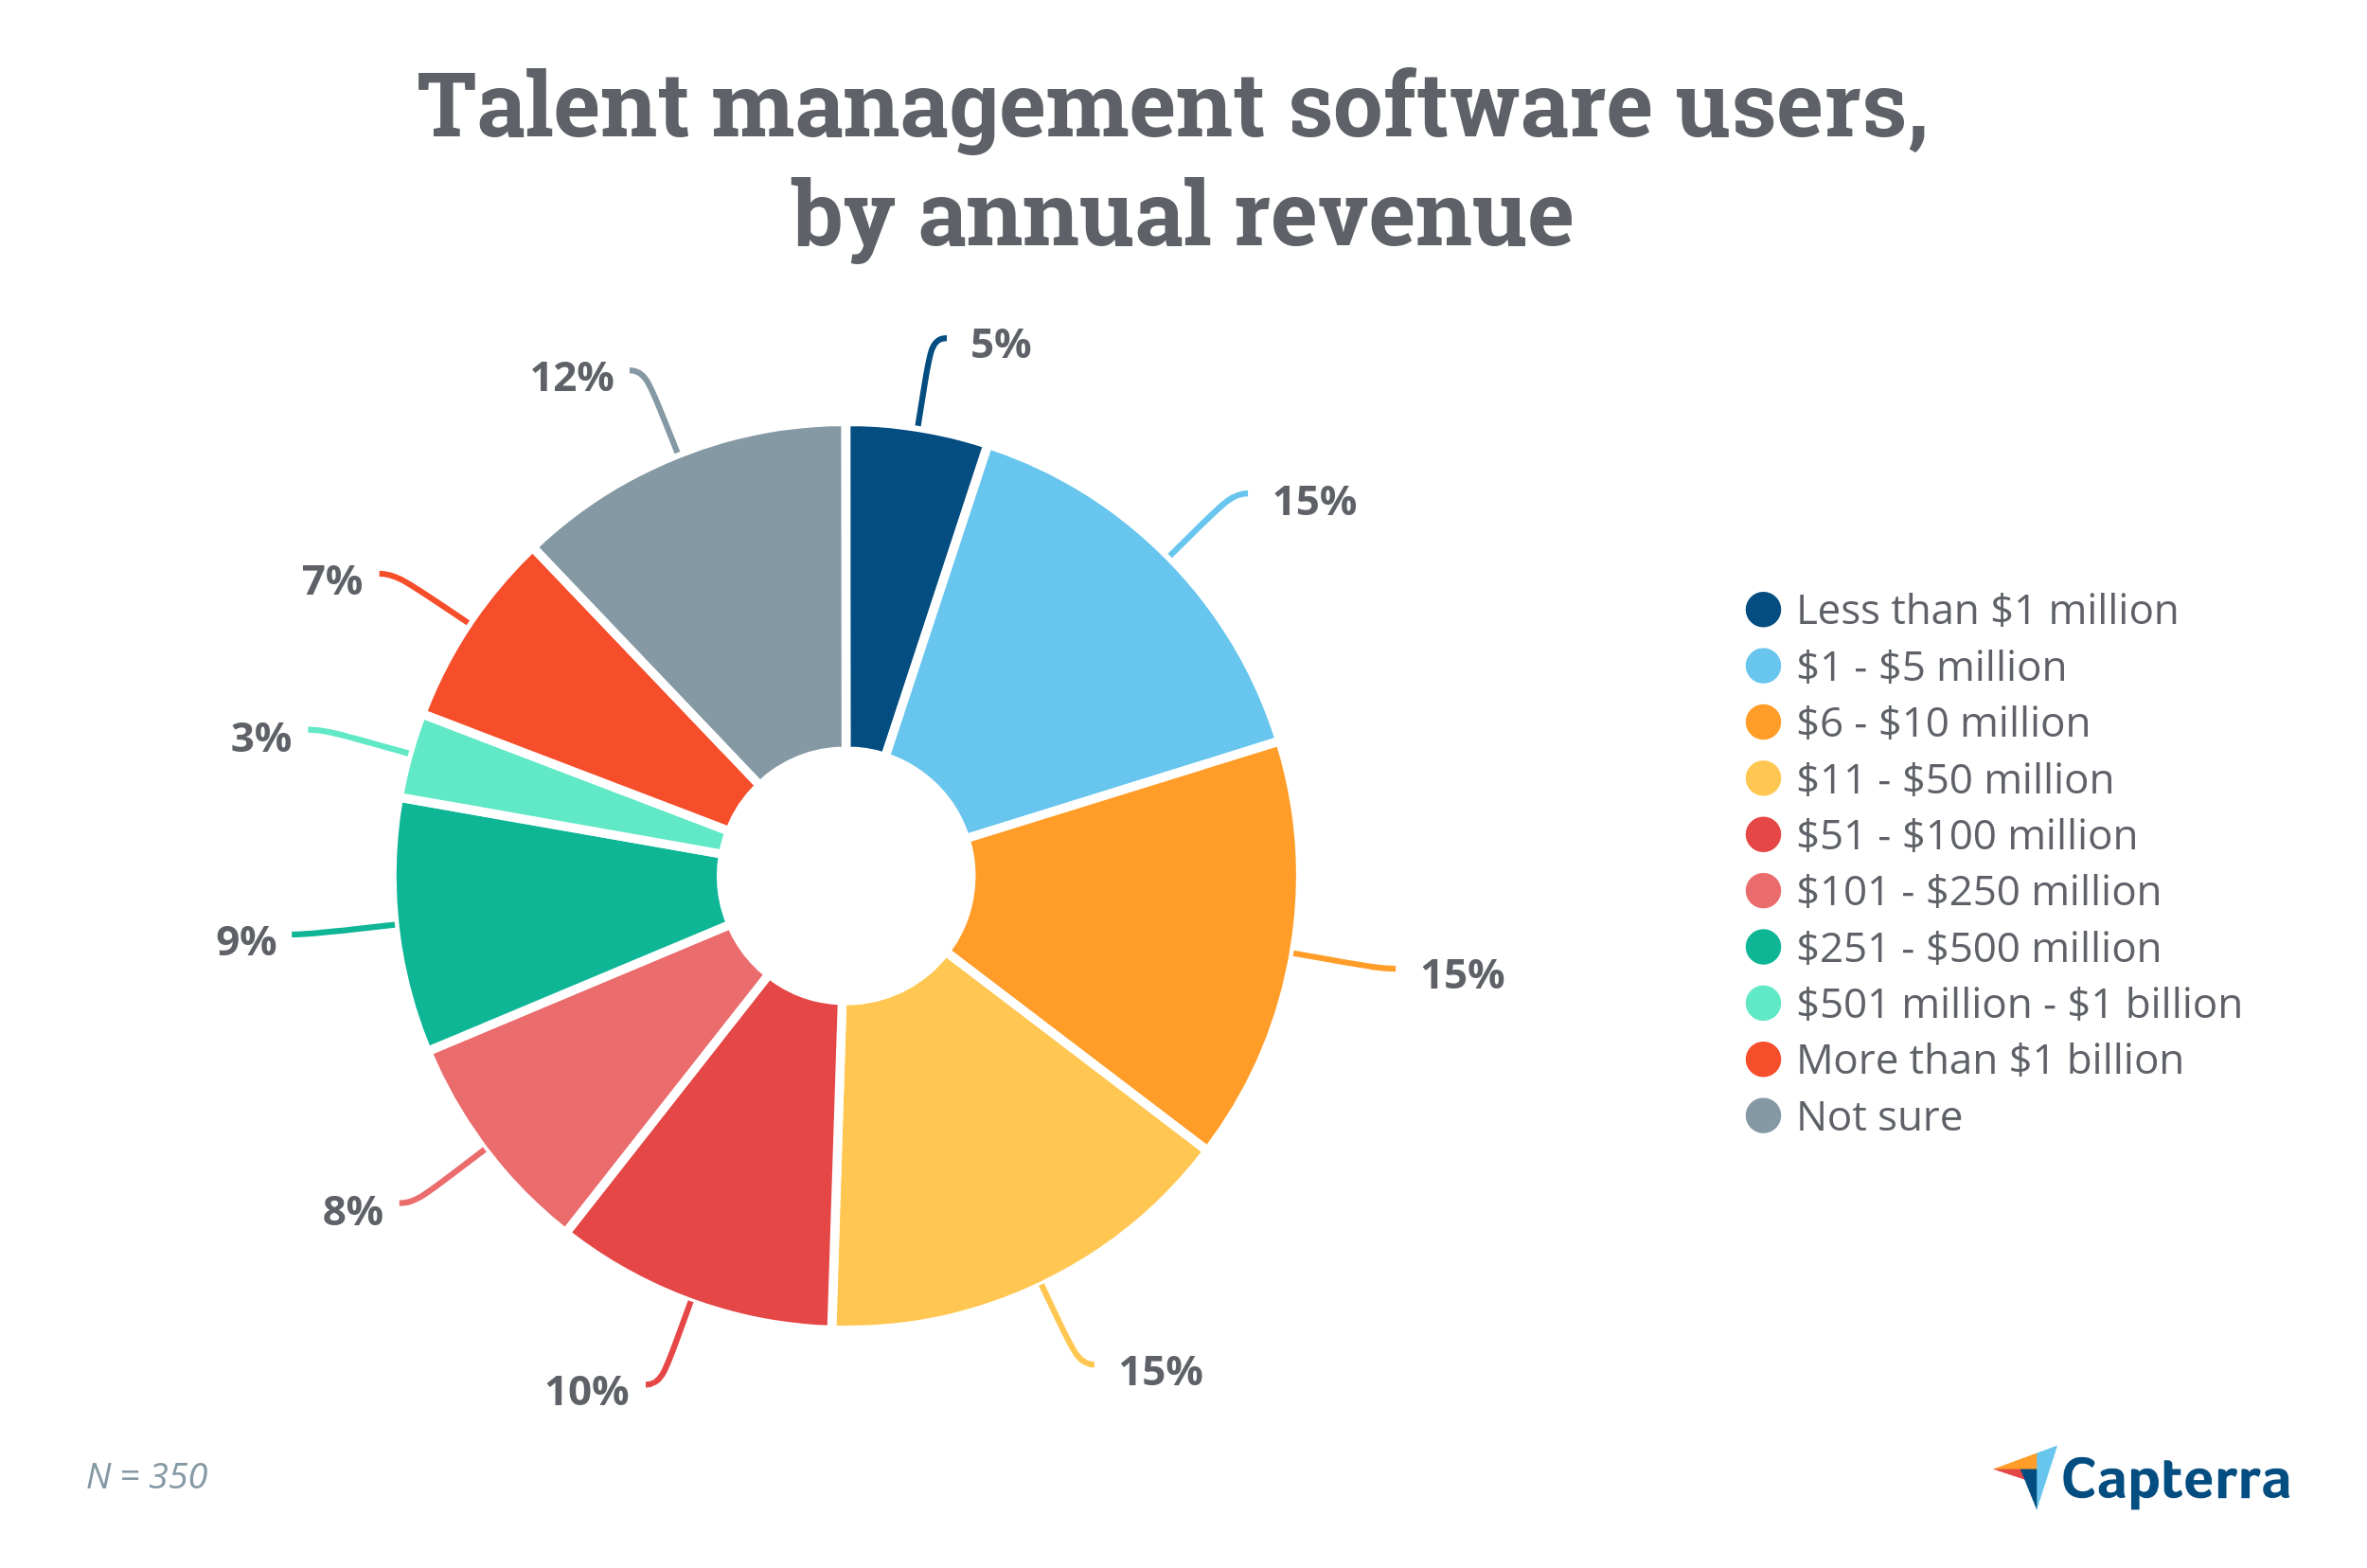 Talent management software users by annual revenue